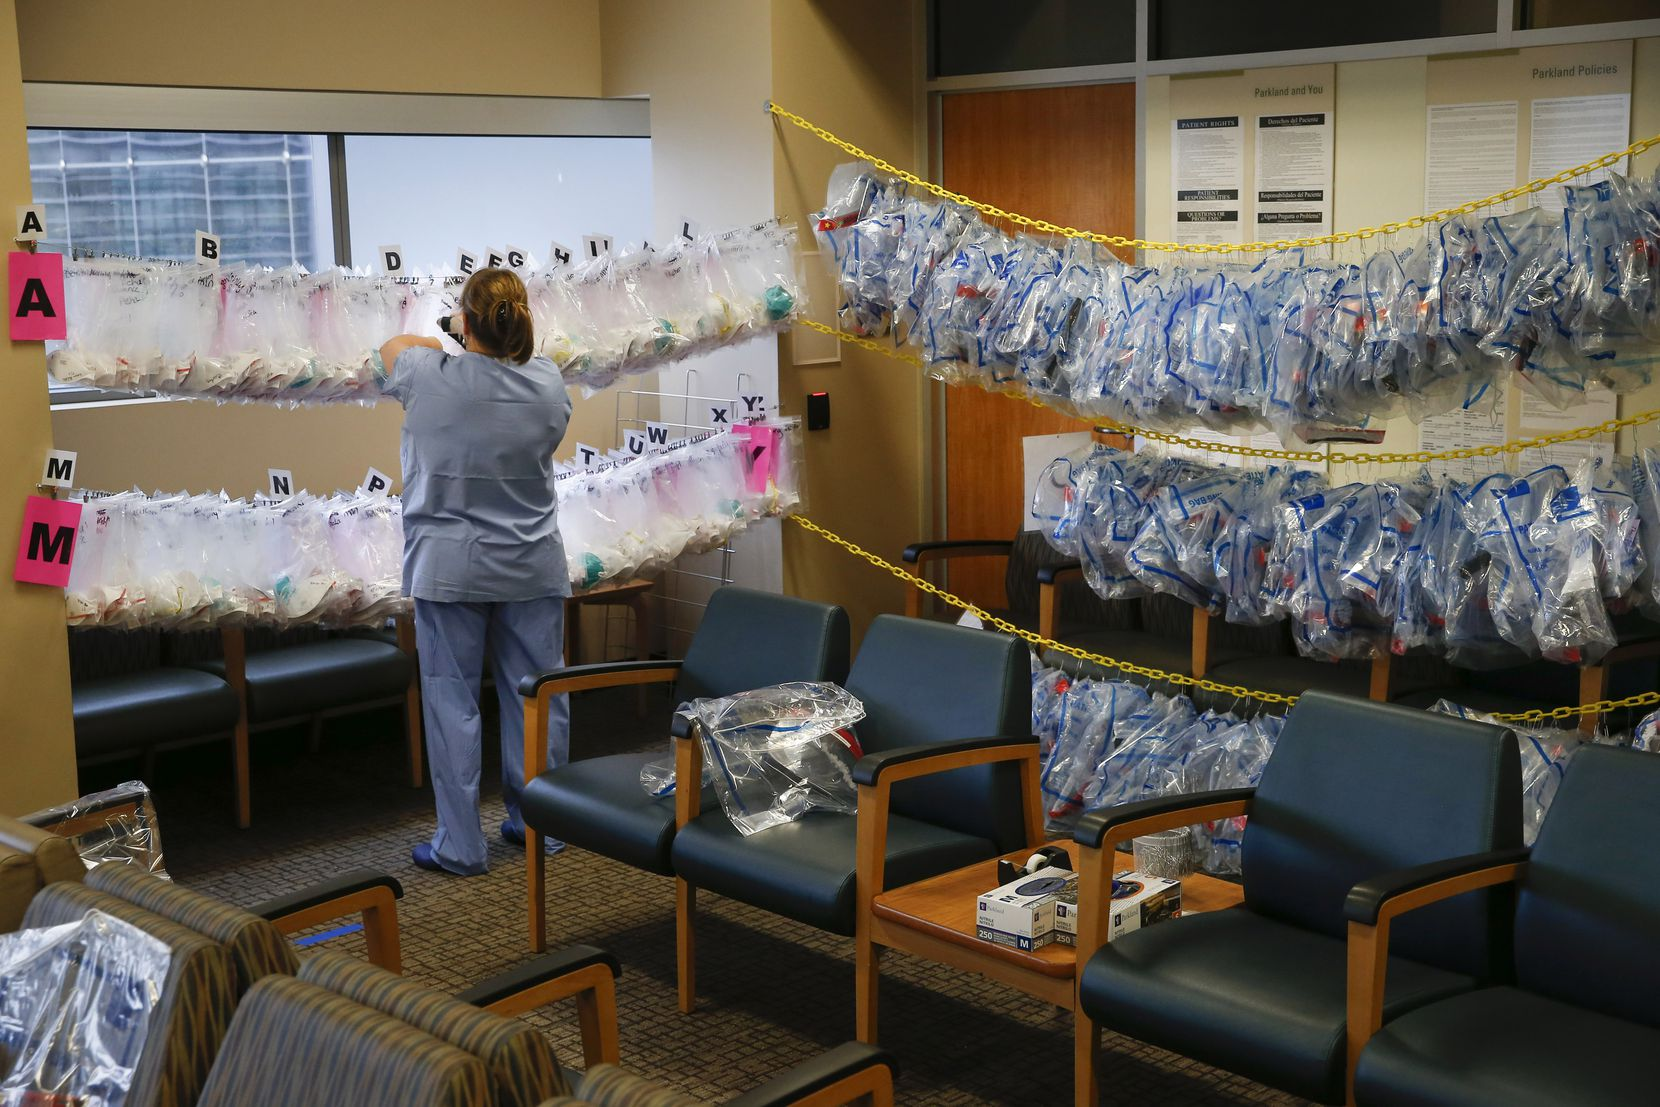 In what during normal times is the OR waiting room, now converted to a check-in station for staff working in the COVID-19 Tactical Care Unit, nurse Victoria Dart organizes sanitized N-95 masks and face shields for reuse by their original user at Parkland Memorial Hospital.